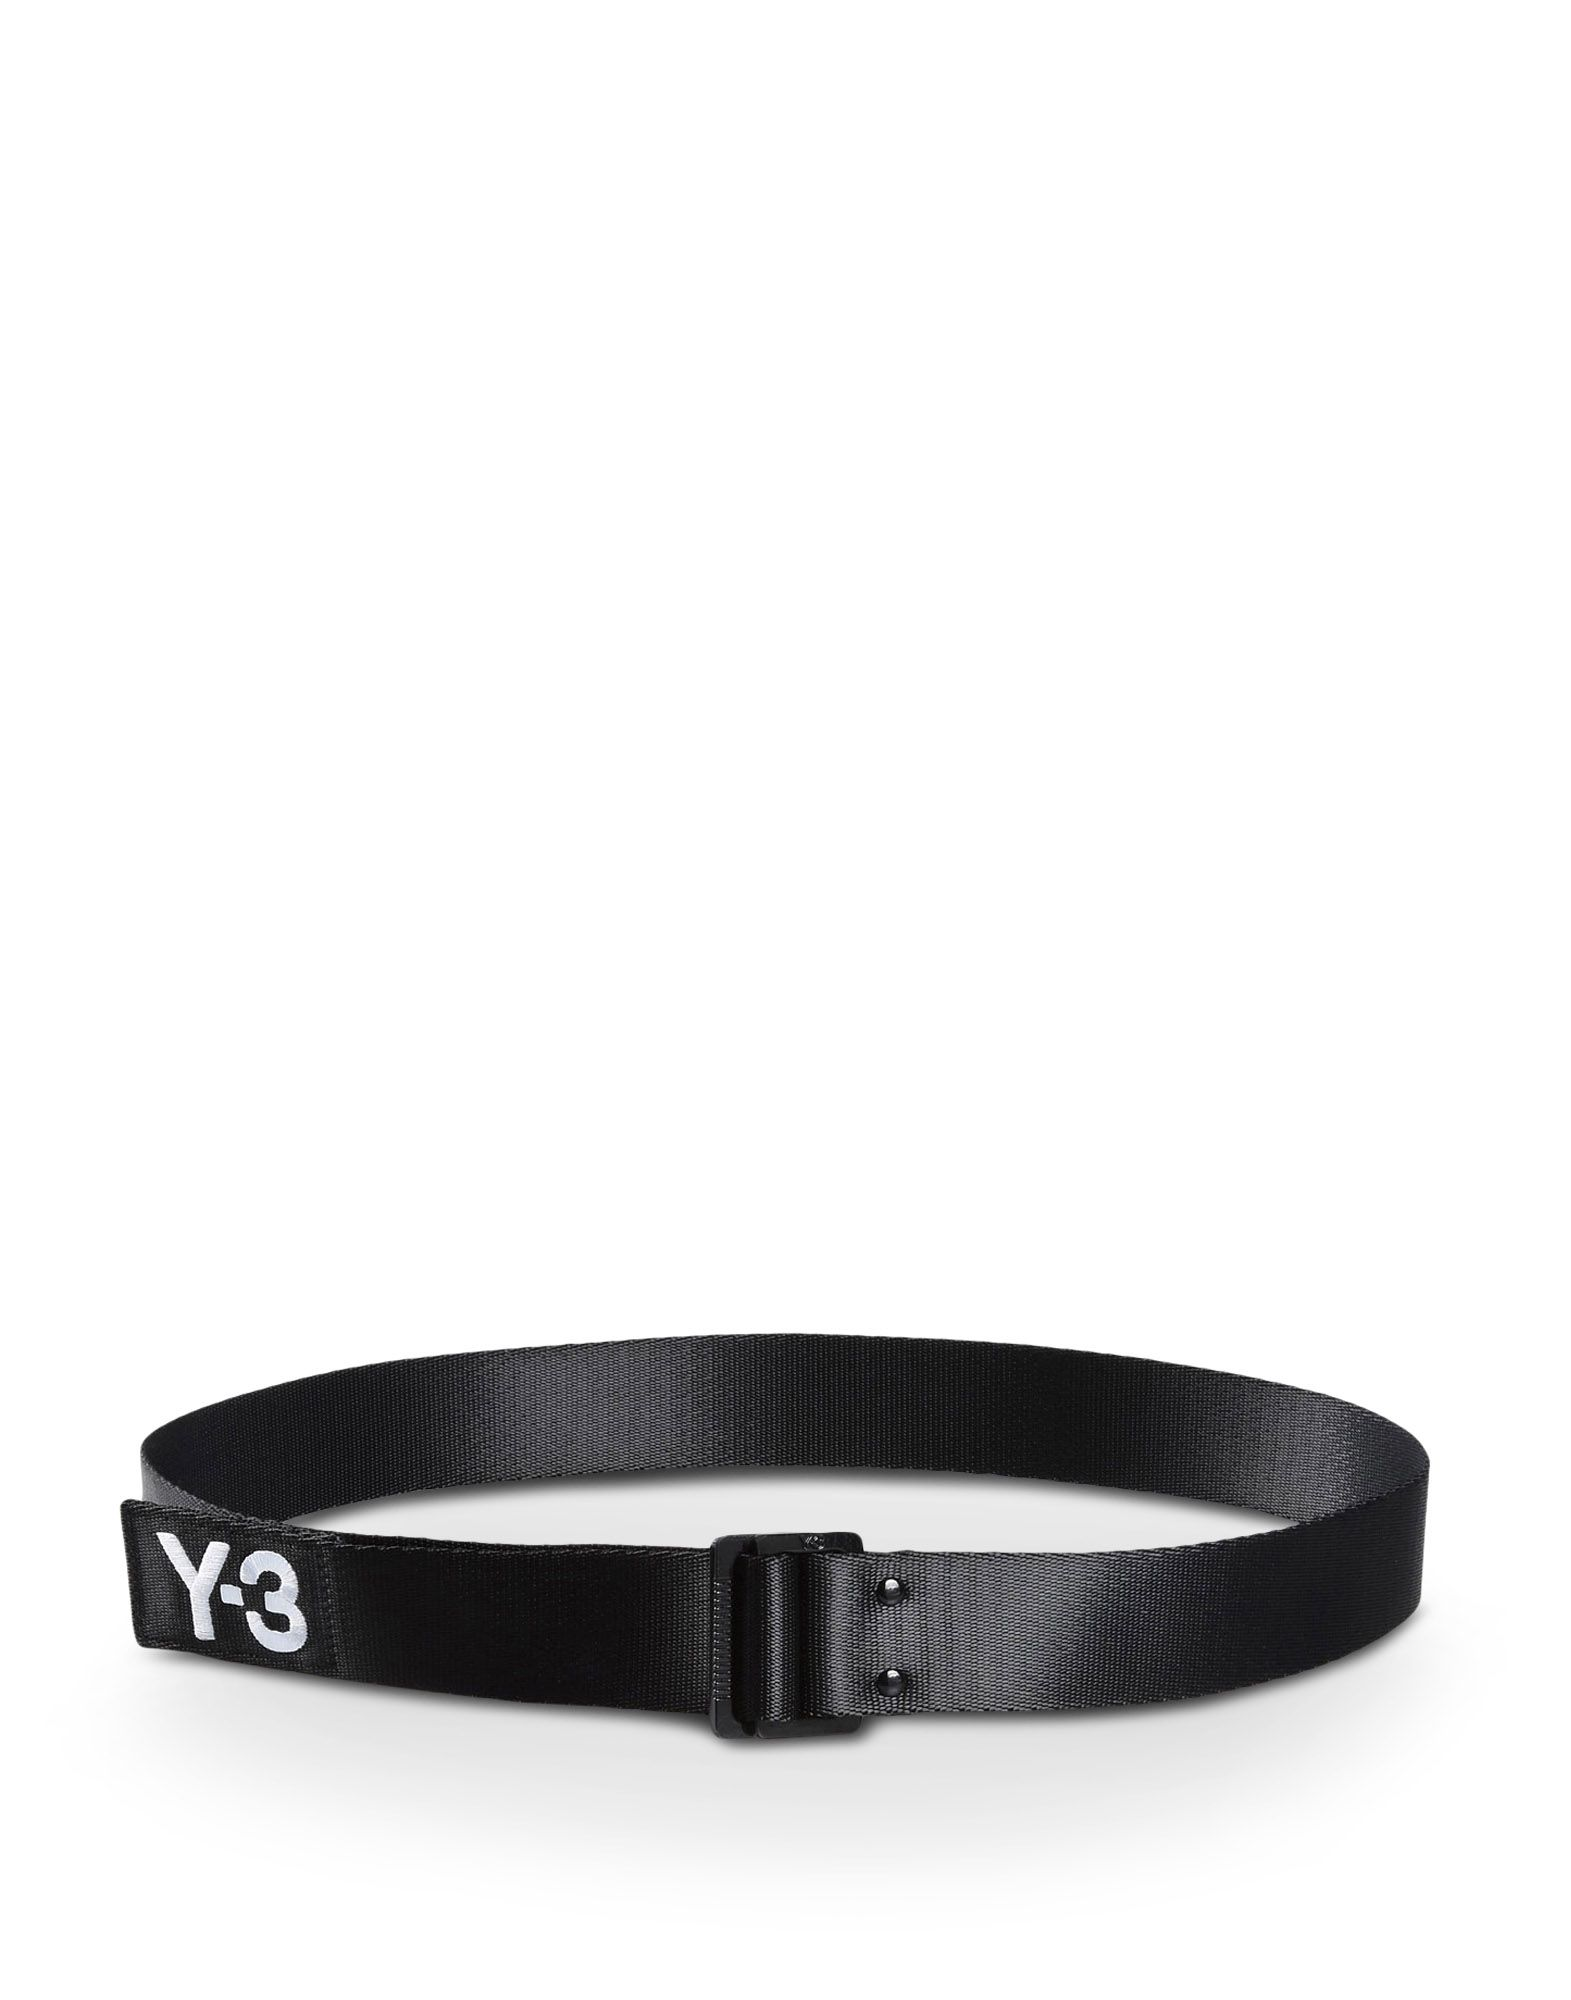 Y-3 BLACK BELT OTHER ACCESSORIES unisex Y-3 adidas